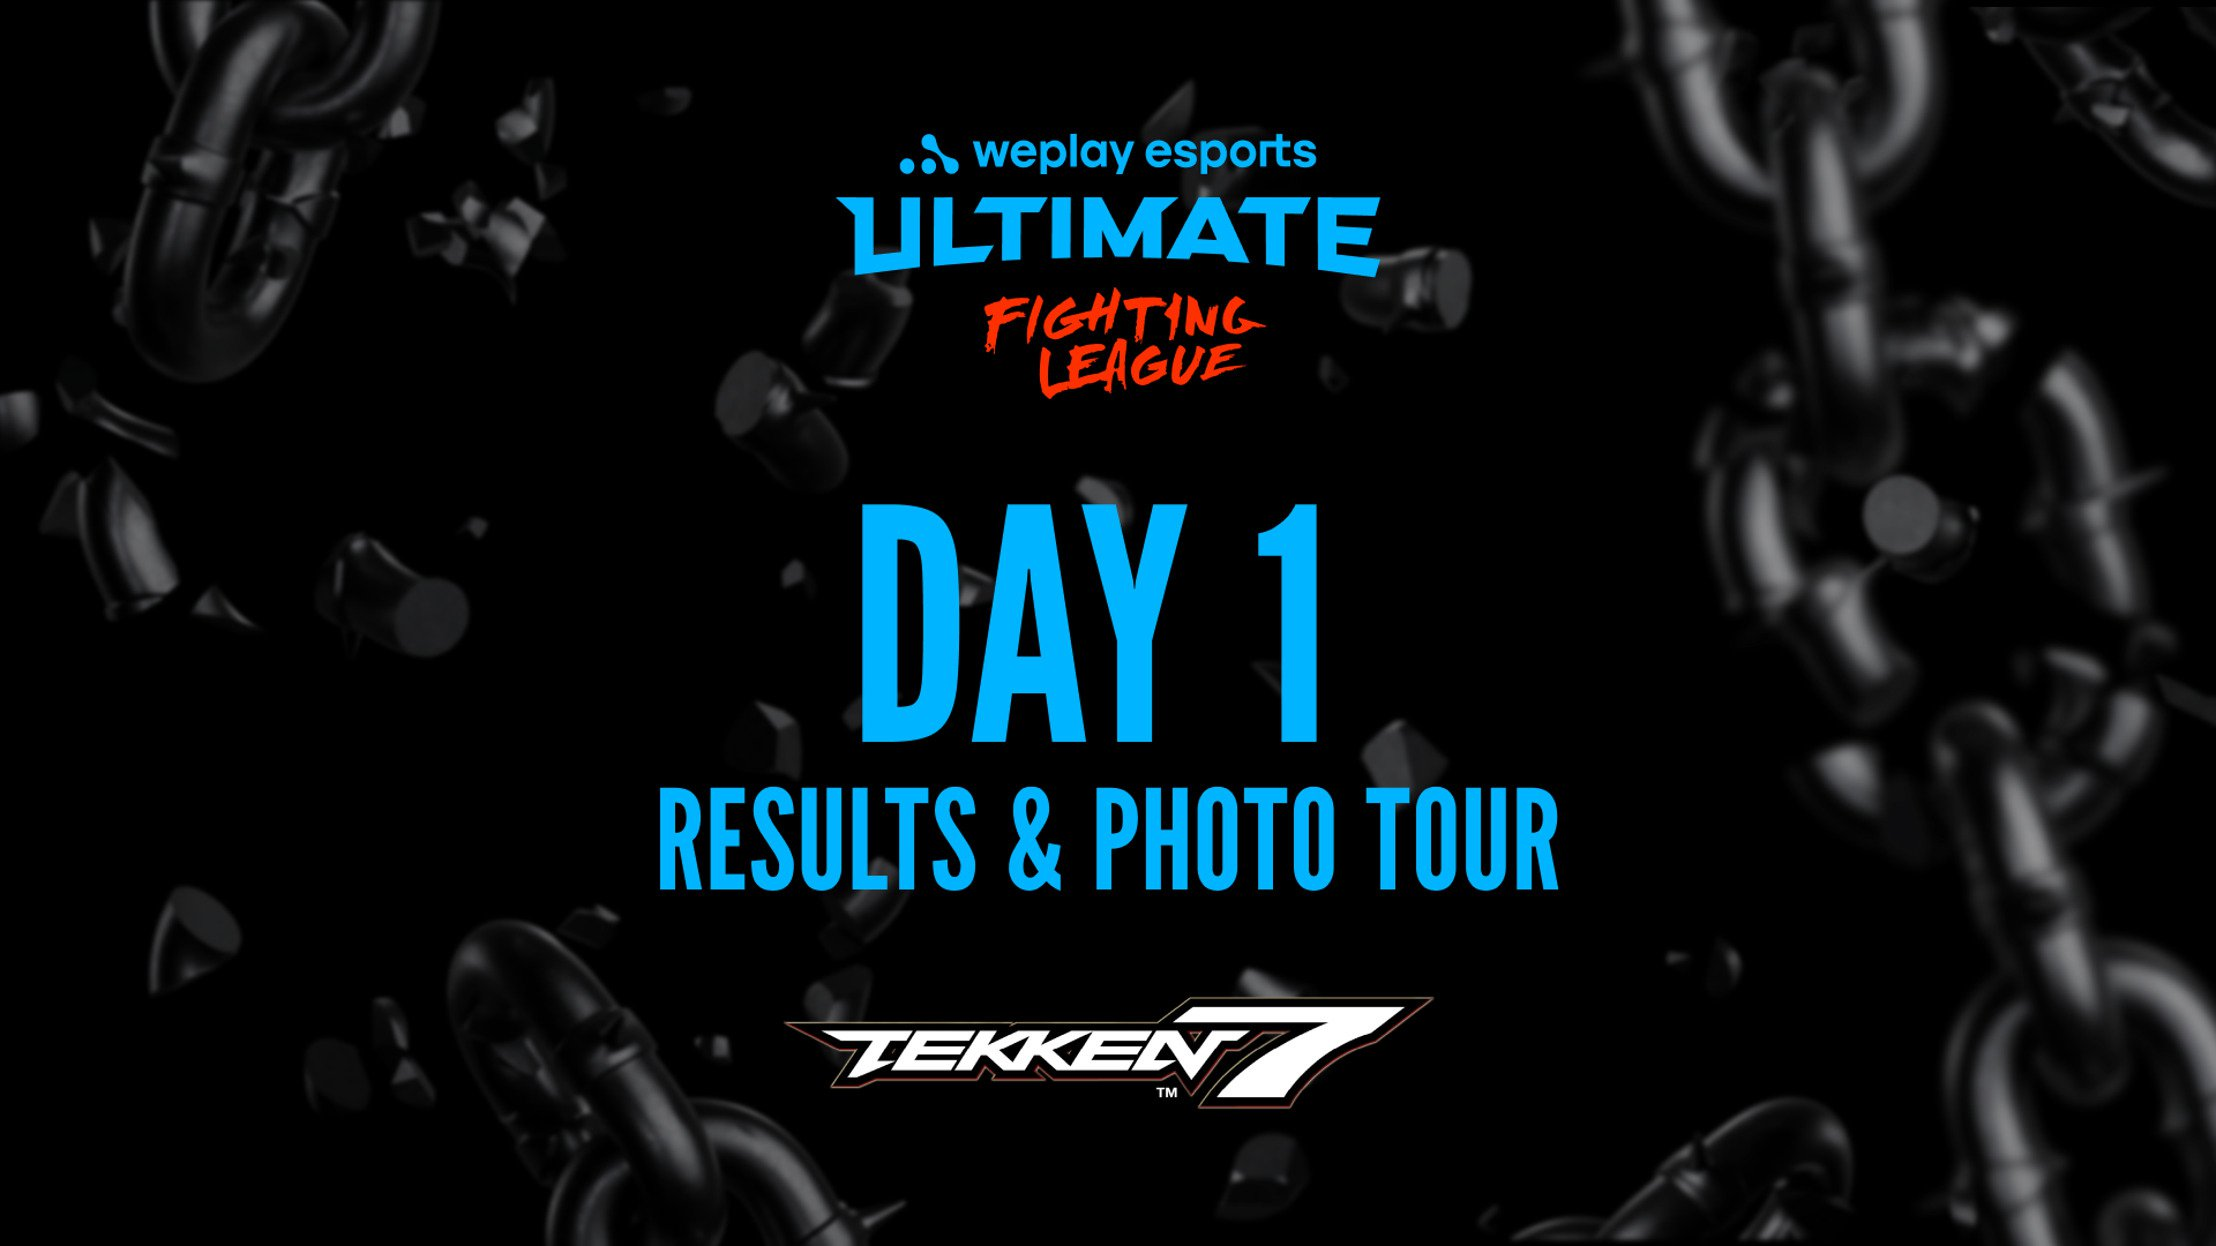 WePlay Ultimate Fighting League Tekken 7 Day 1 results and Photo Tour